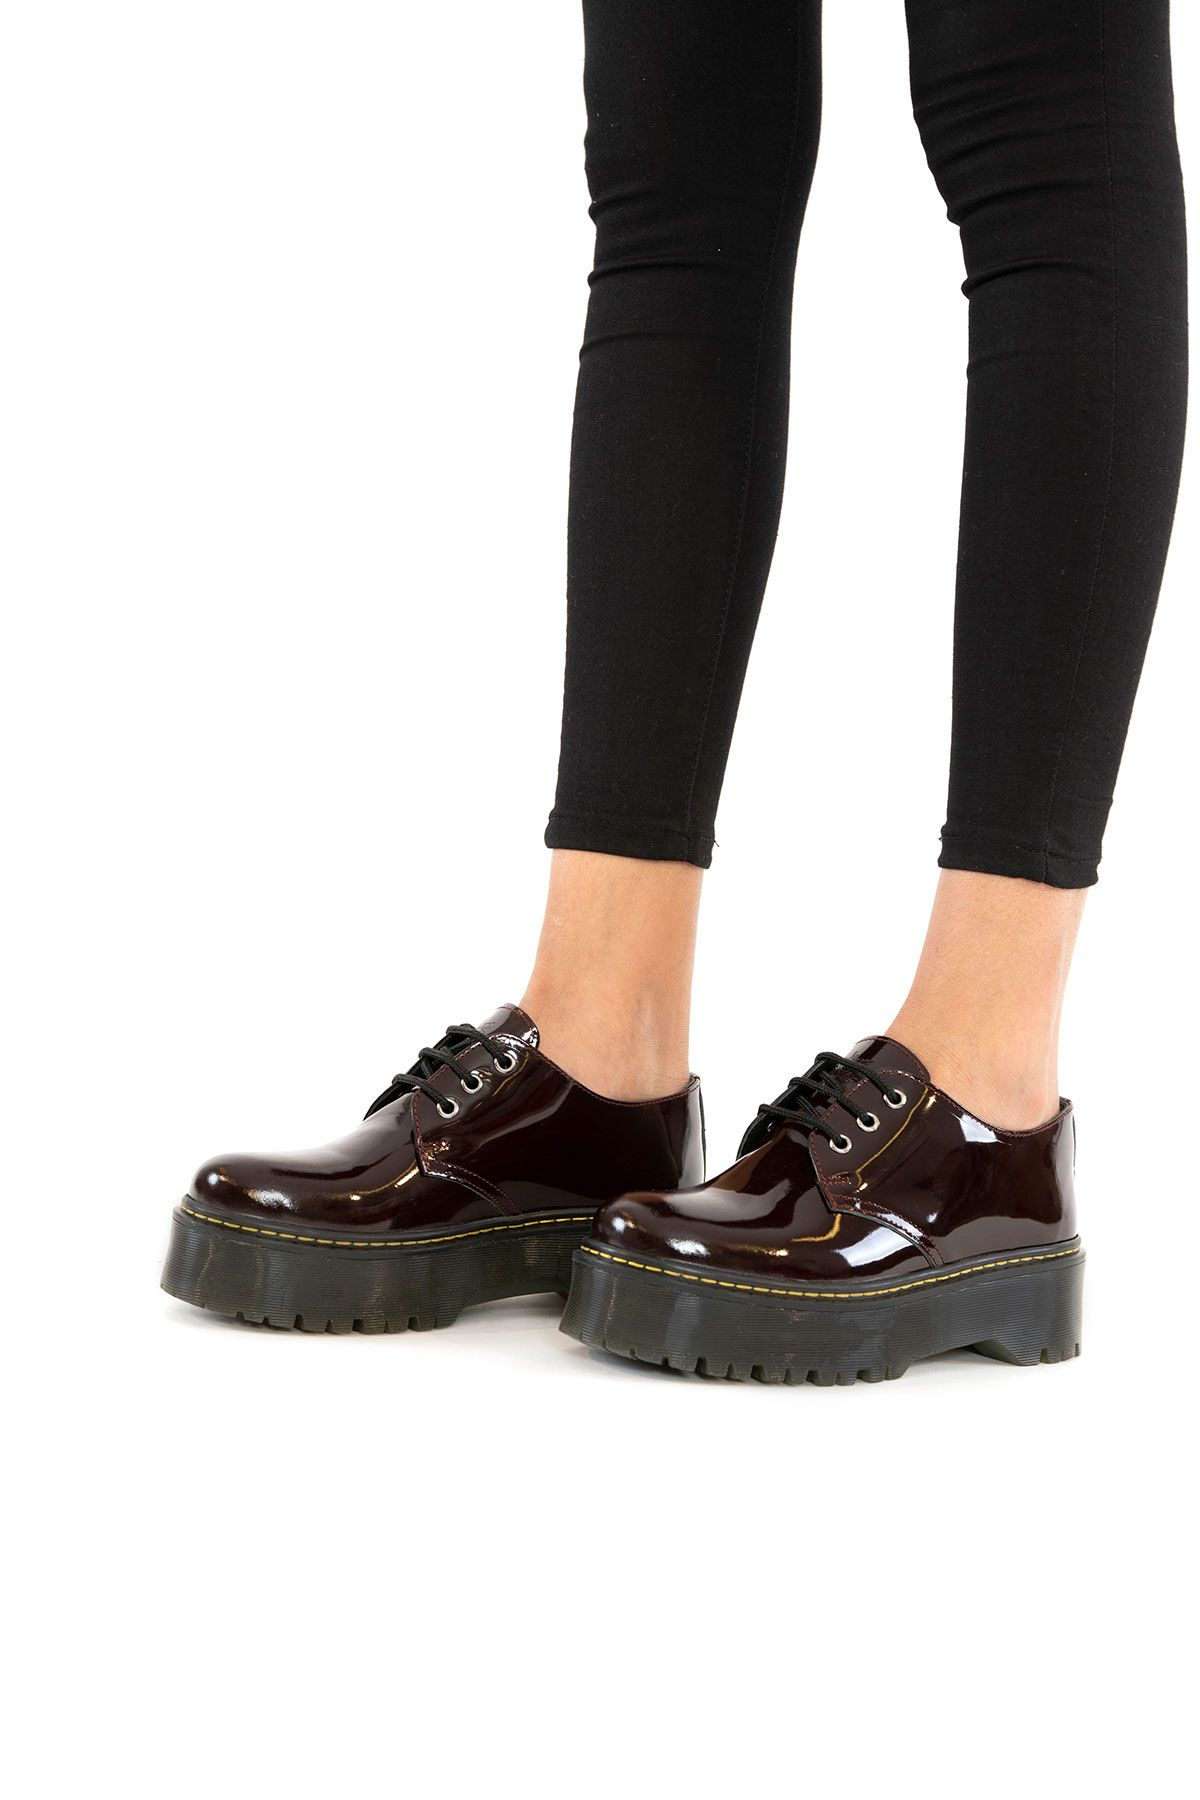 Pegia Genuine Patent Leather Women's Shoes 500700 Claret red